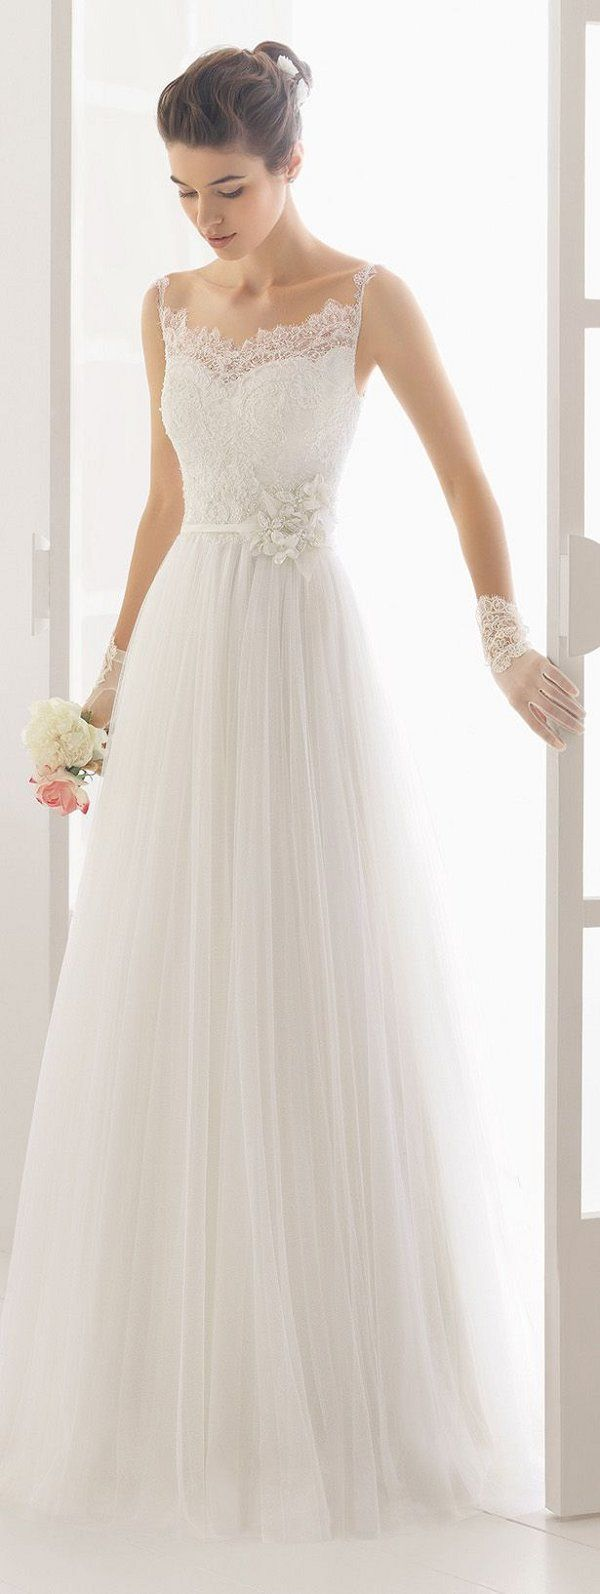 wedding dress simple classy wedding dresses 25 Best Ideas about Wedding Dress Simple on Pinterest Simple wedding gowns Simple classy wedding dress and Lace top wedding gowns